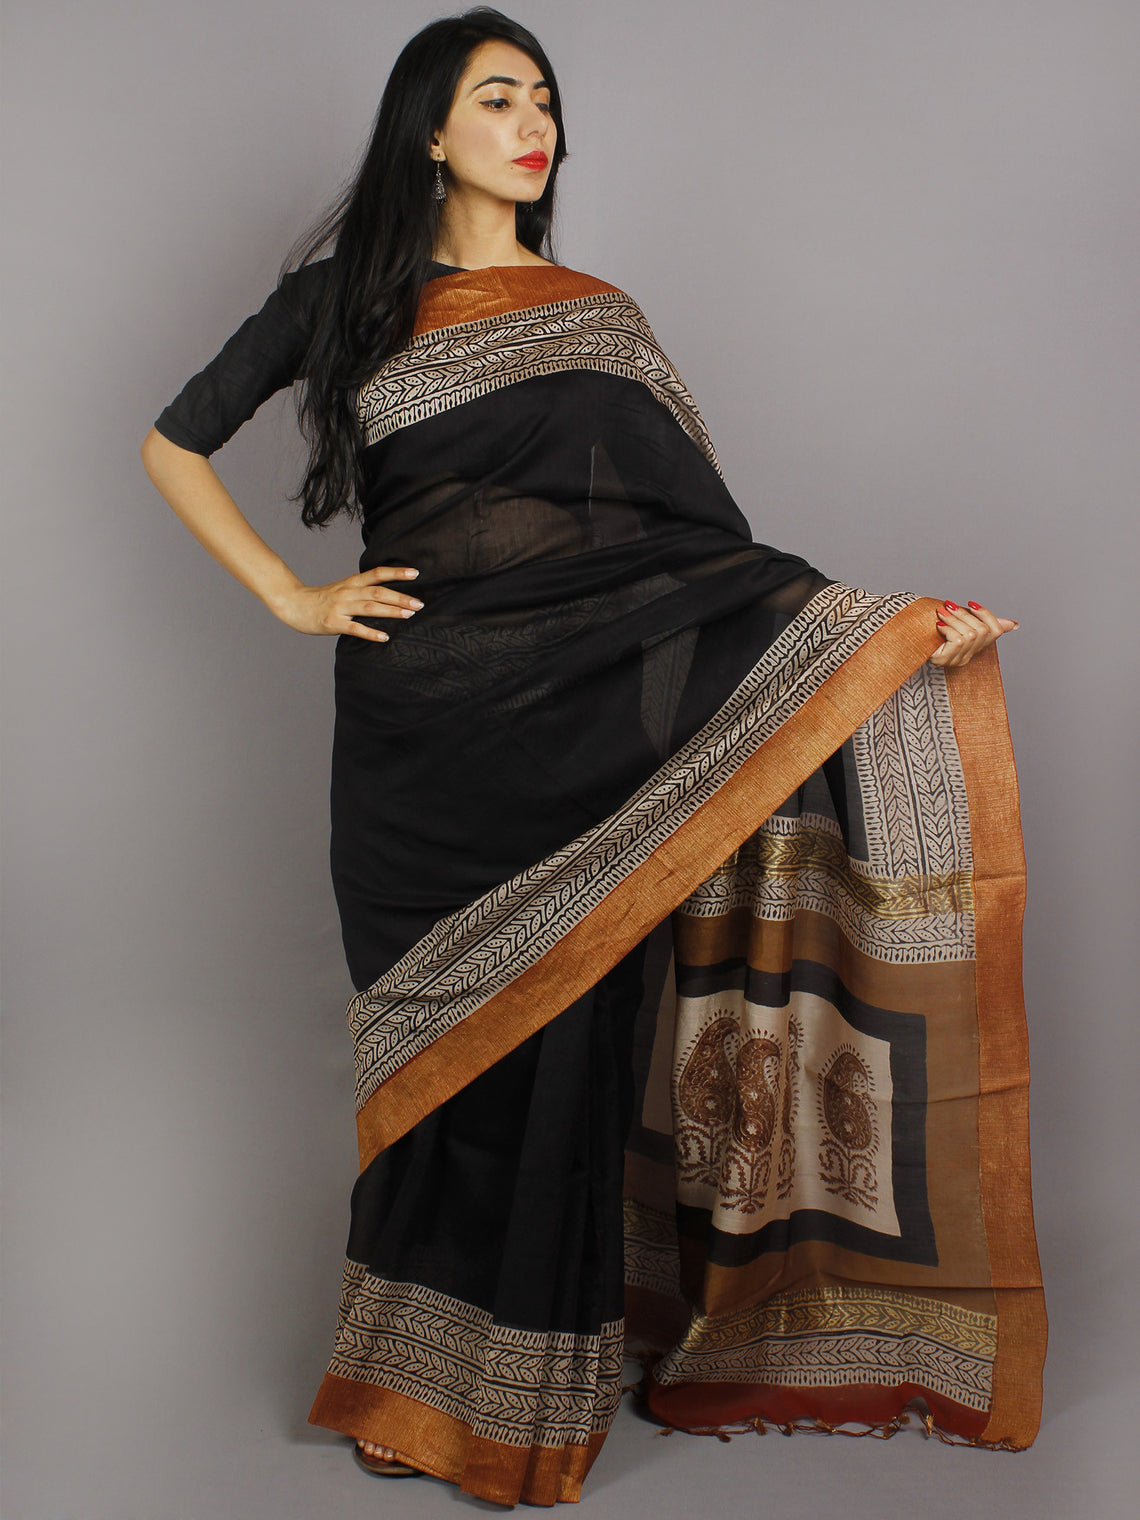 Black Beige Brown Hand Block Printed & Hand Painted in Natural Vegetable Colors Chanderi Saree With Ghicha Border - S031701225